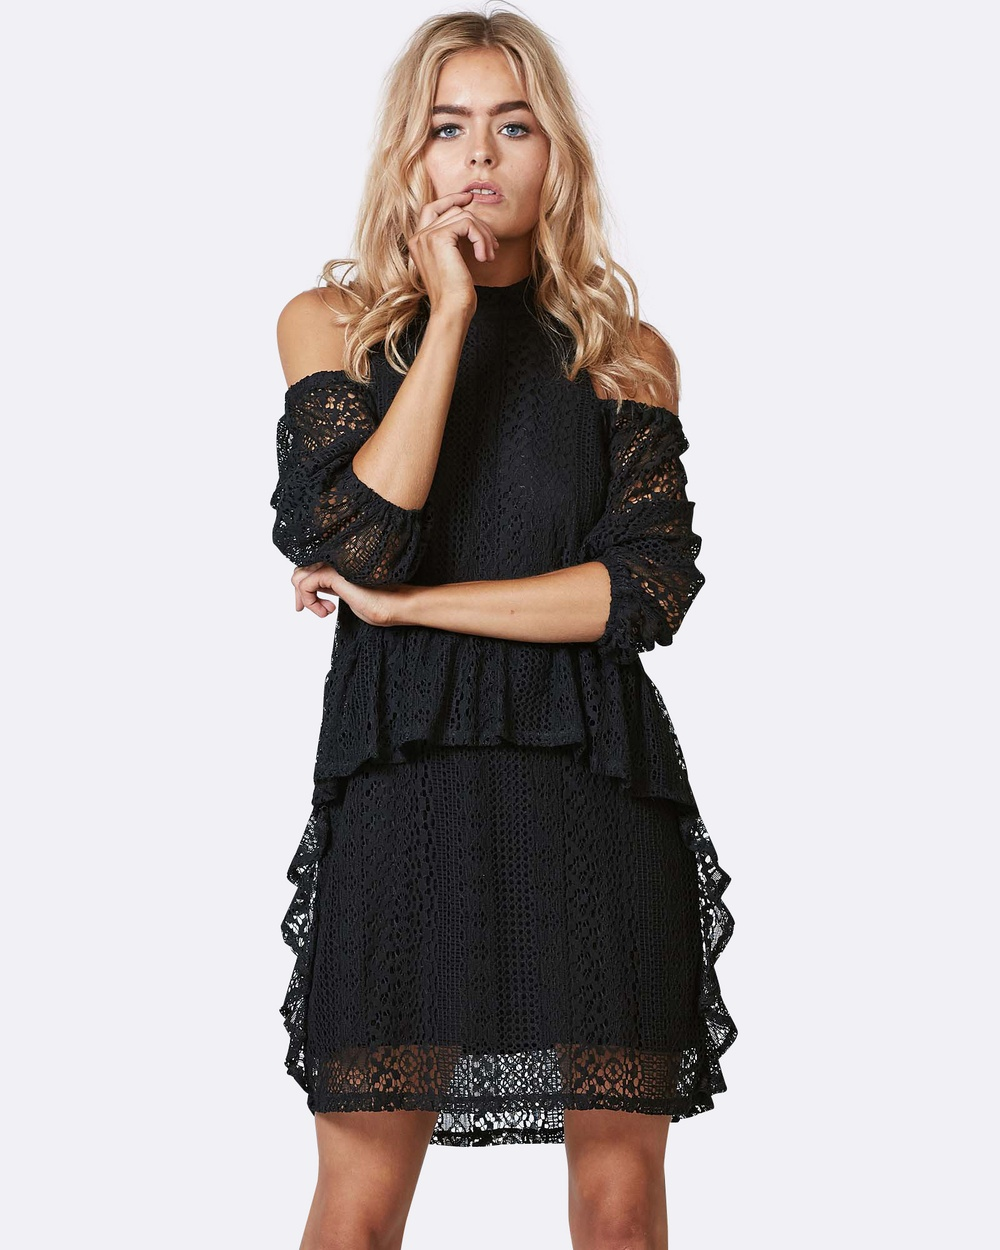 Three of Something - Before and After Dress Dresses (BLACK LACE)